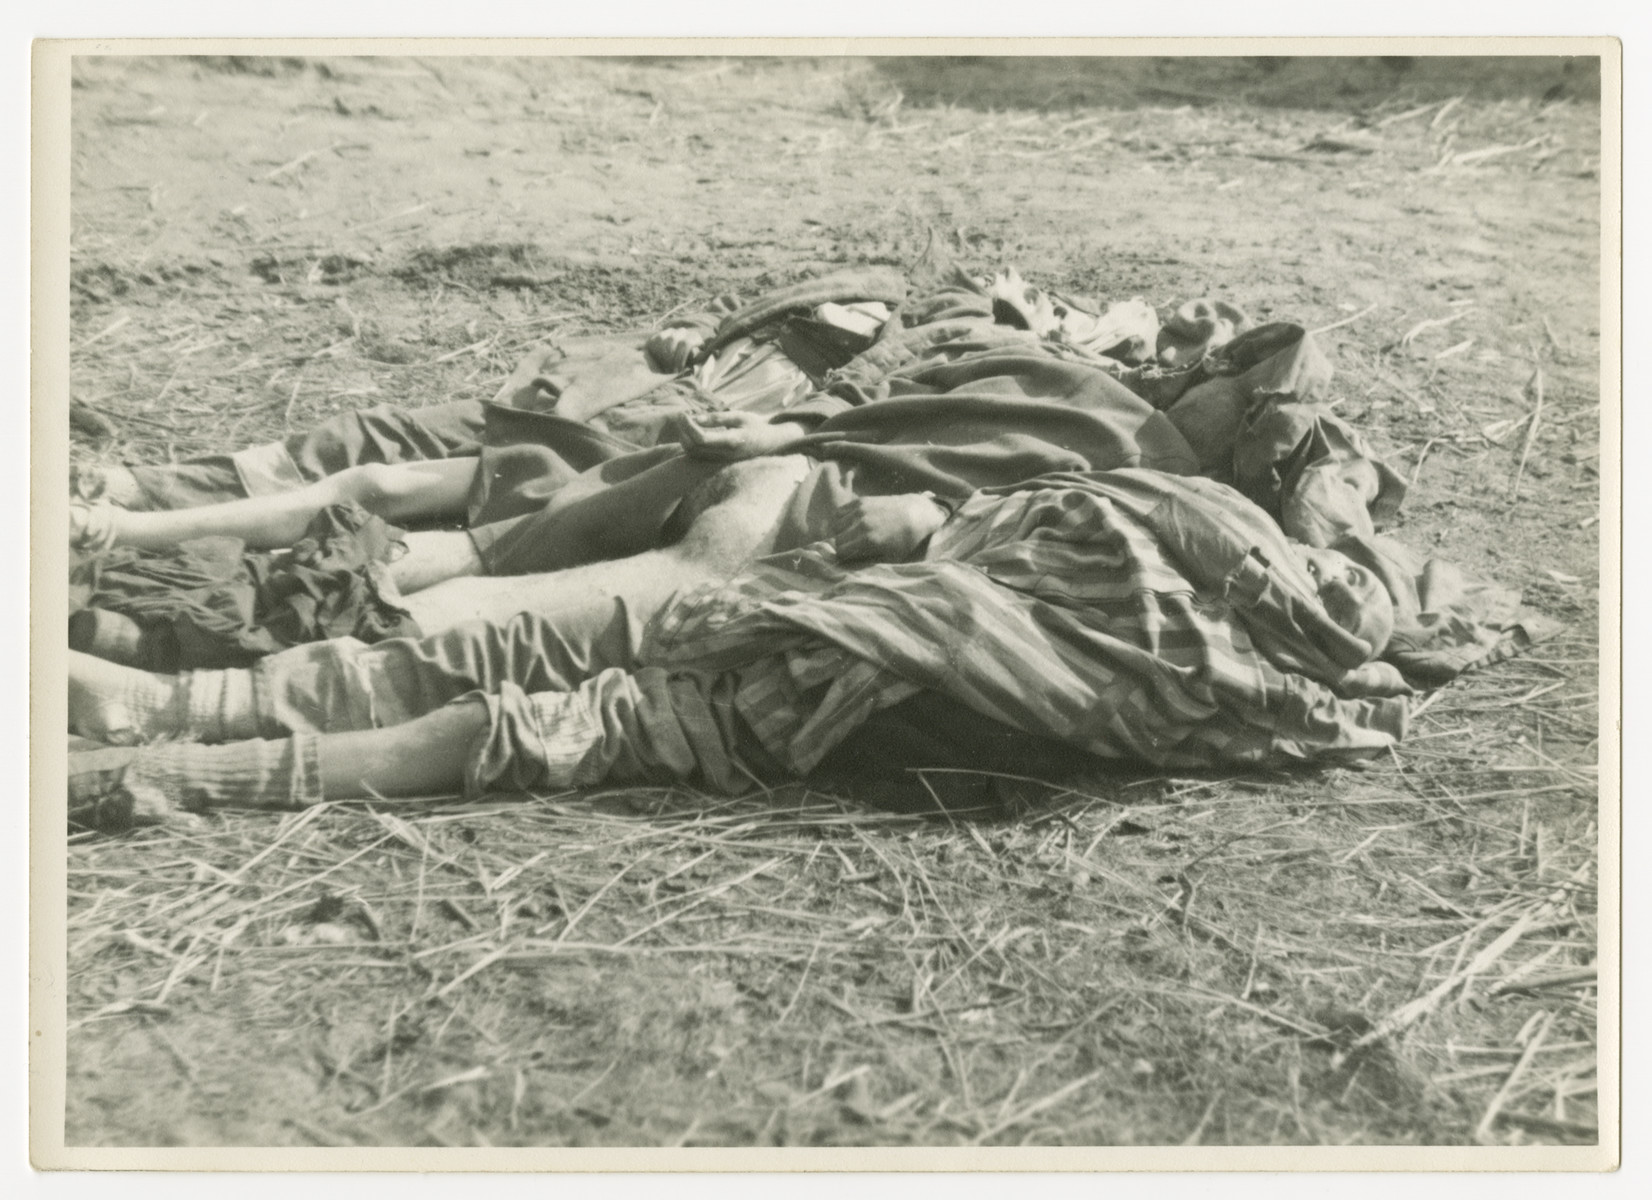 Three corpses are lined up on the straw covered ground of the Woebbelin concentration camp.